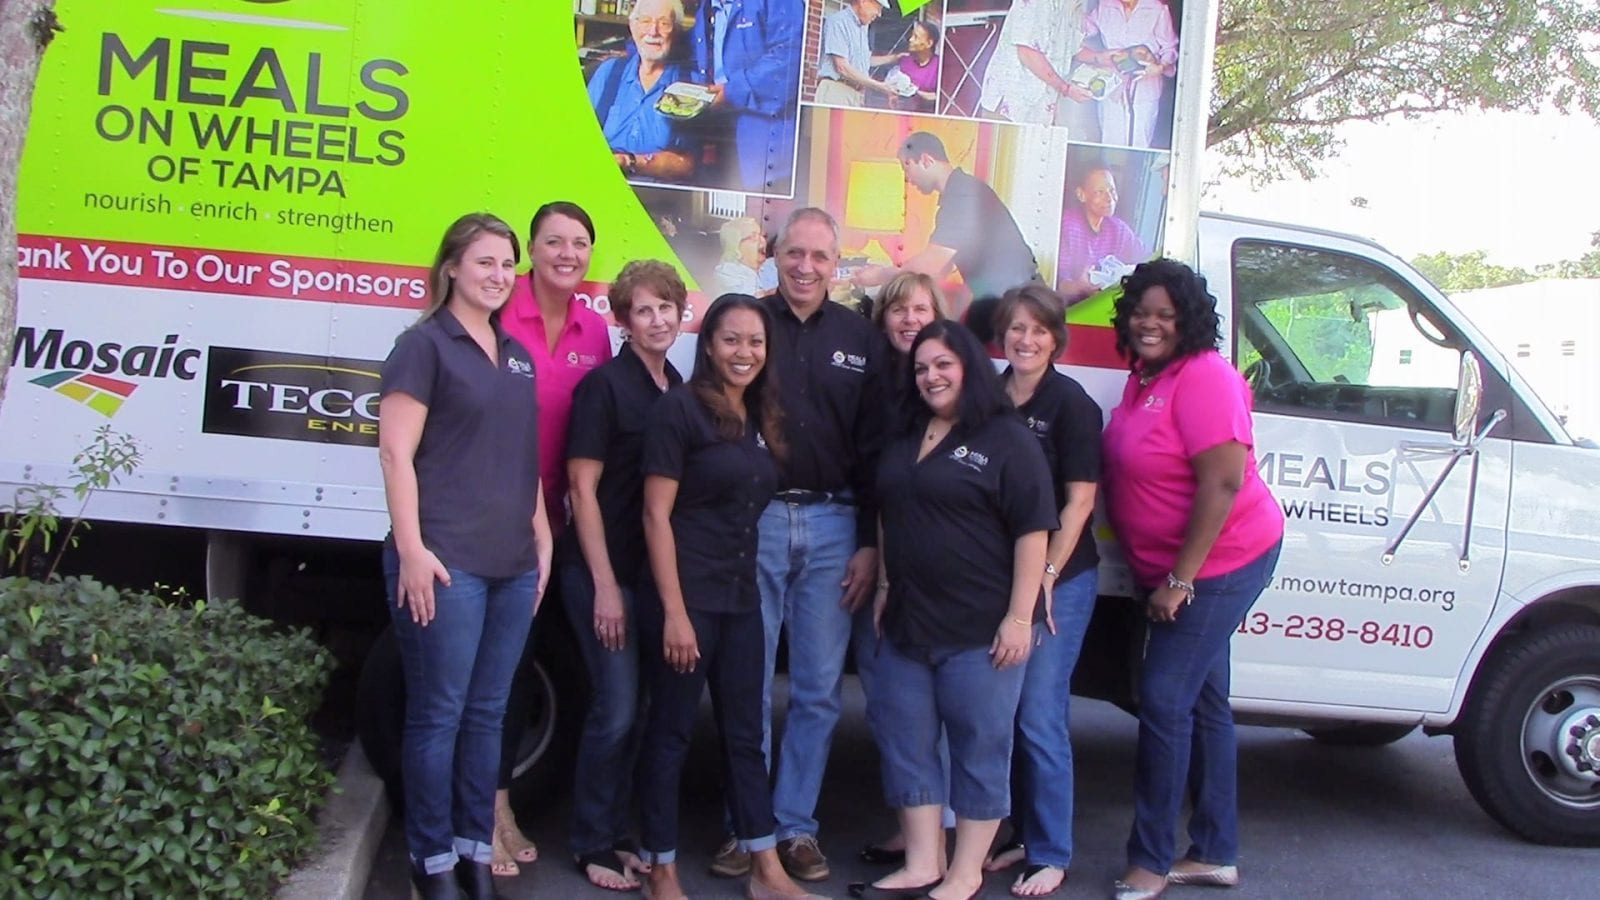 Meals On Wheels of Tampa staff.